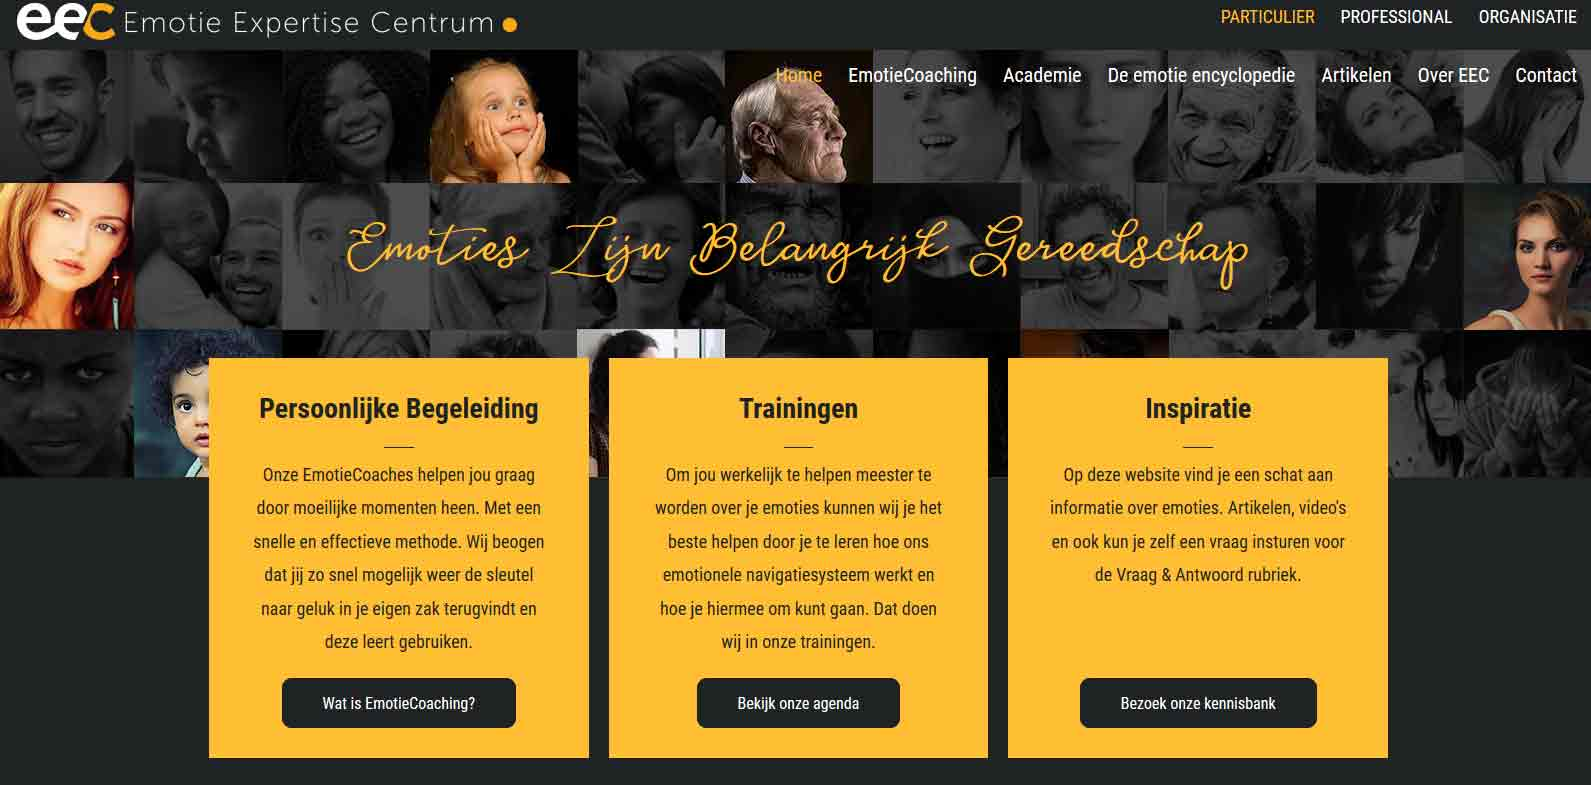 Emotie Expertise Centrum Nederland 2019